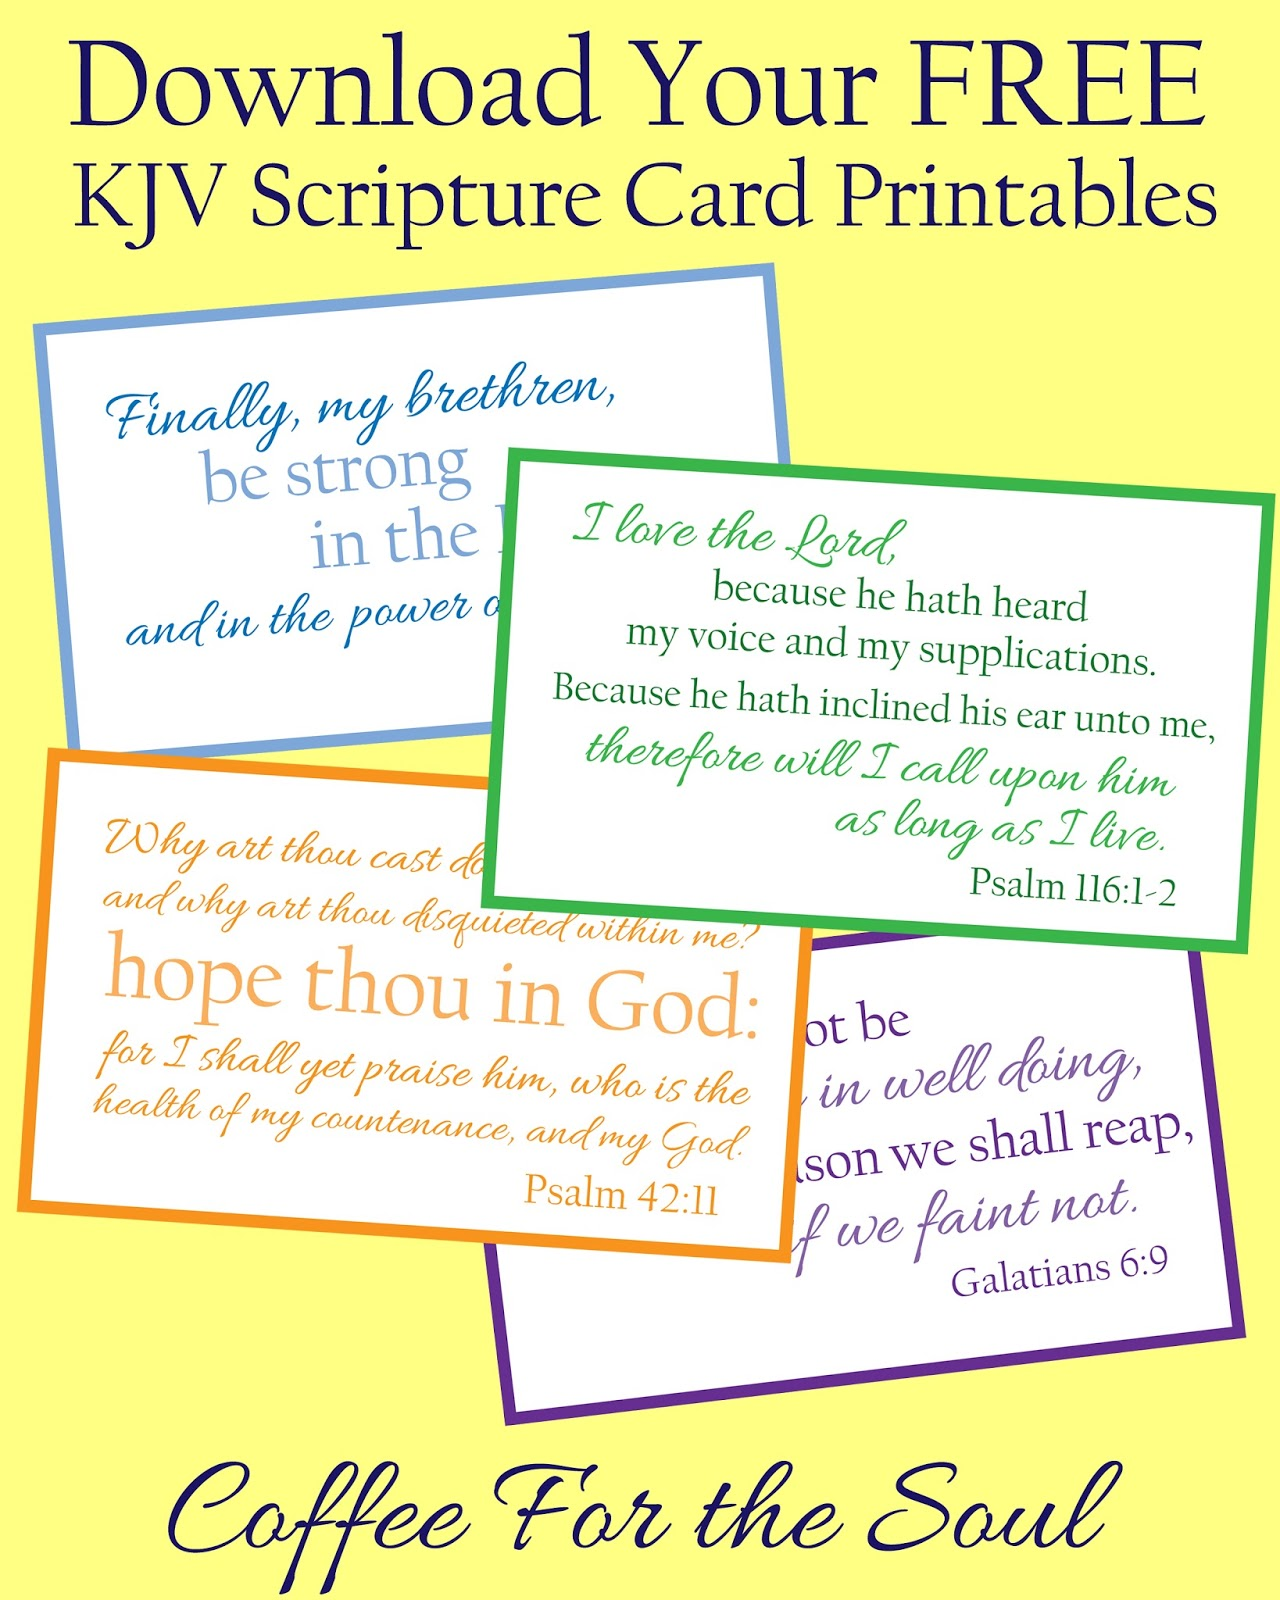 It's just a picture of Revered Free Printable Scripture Cards